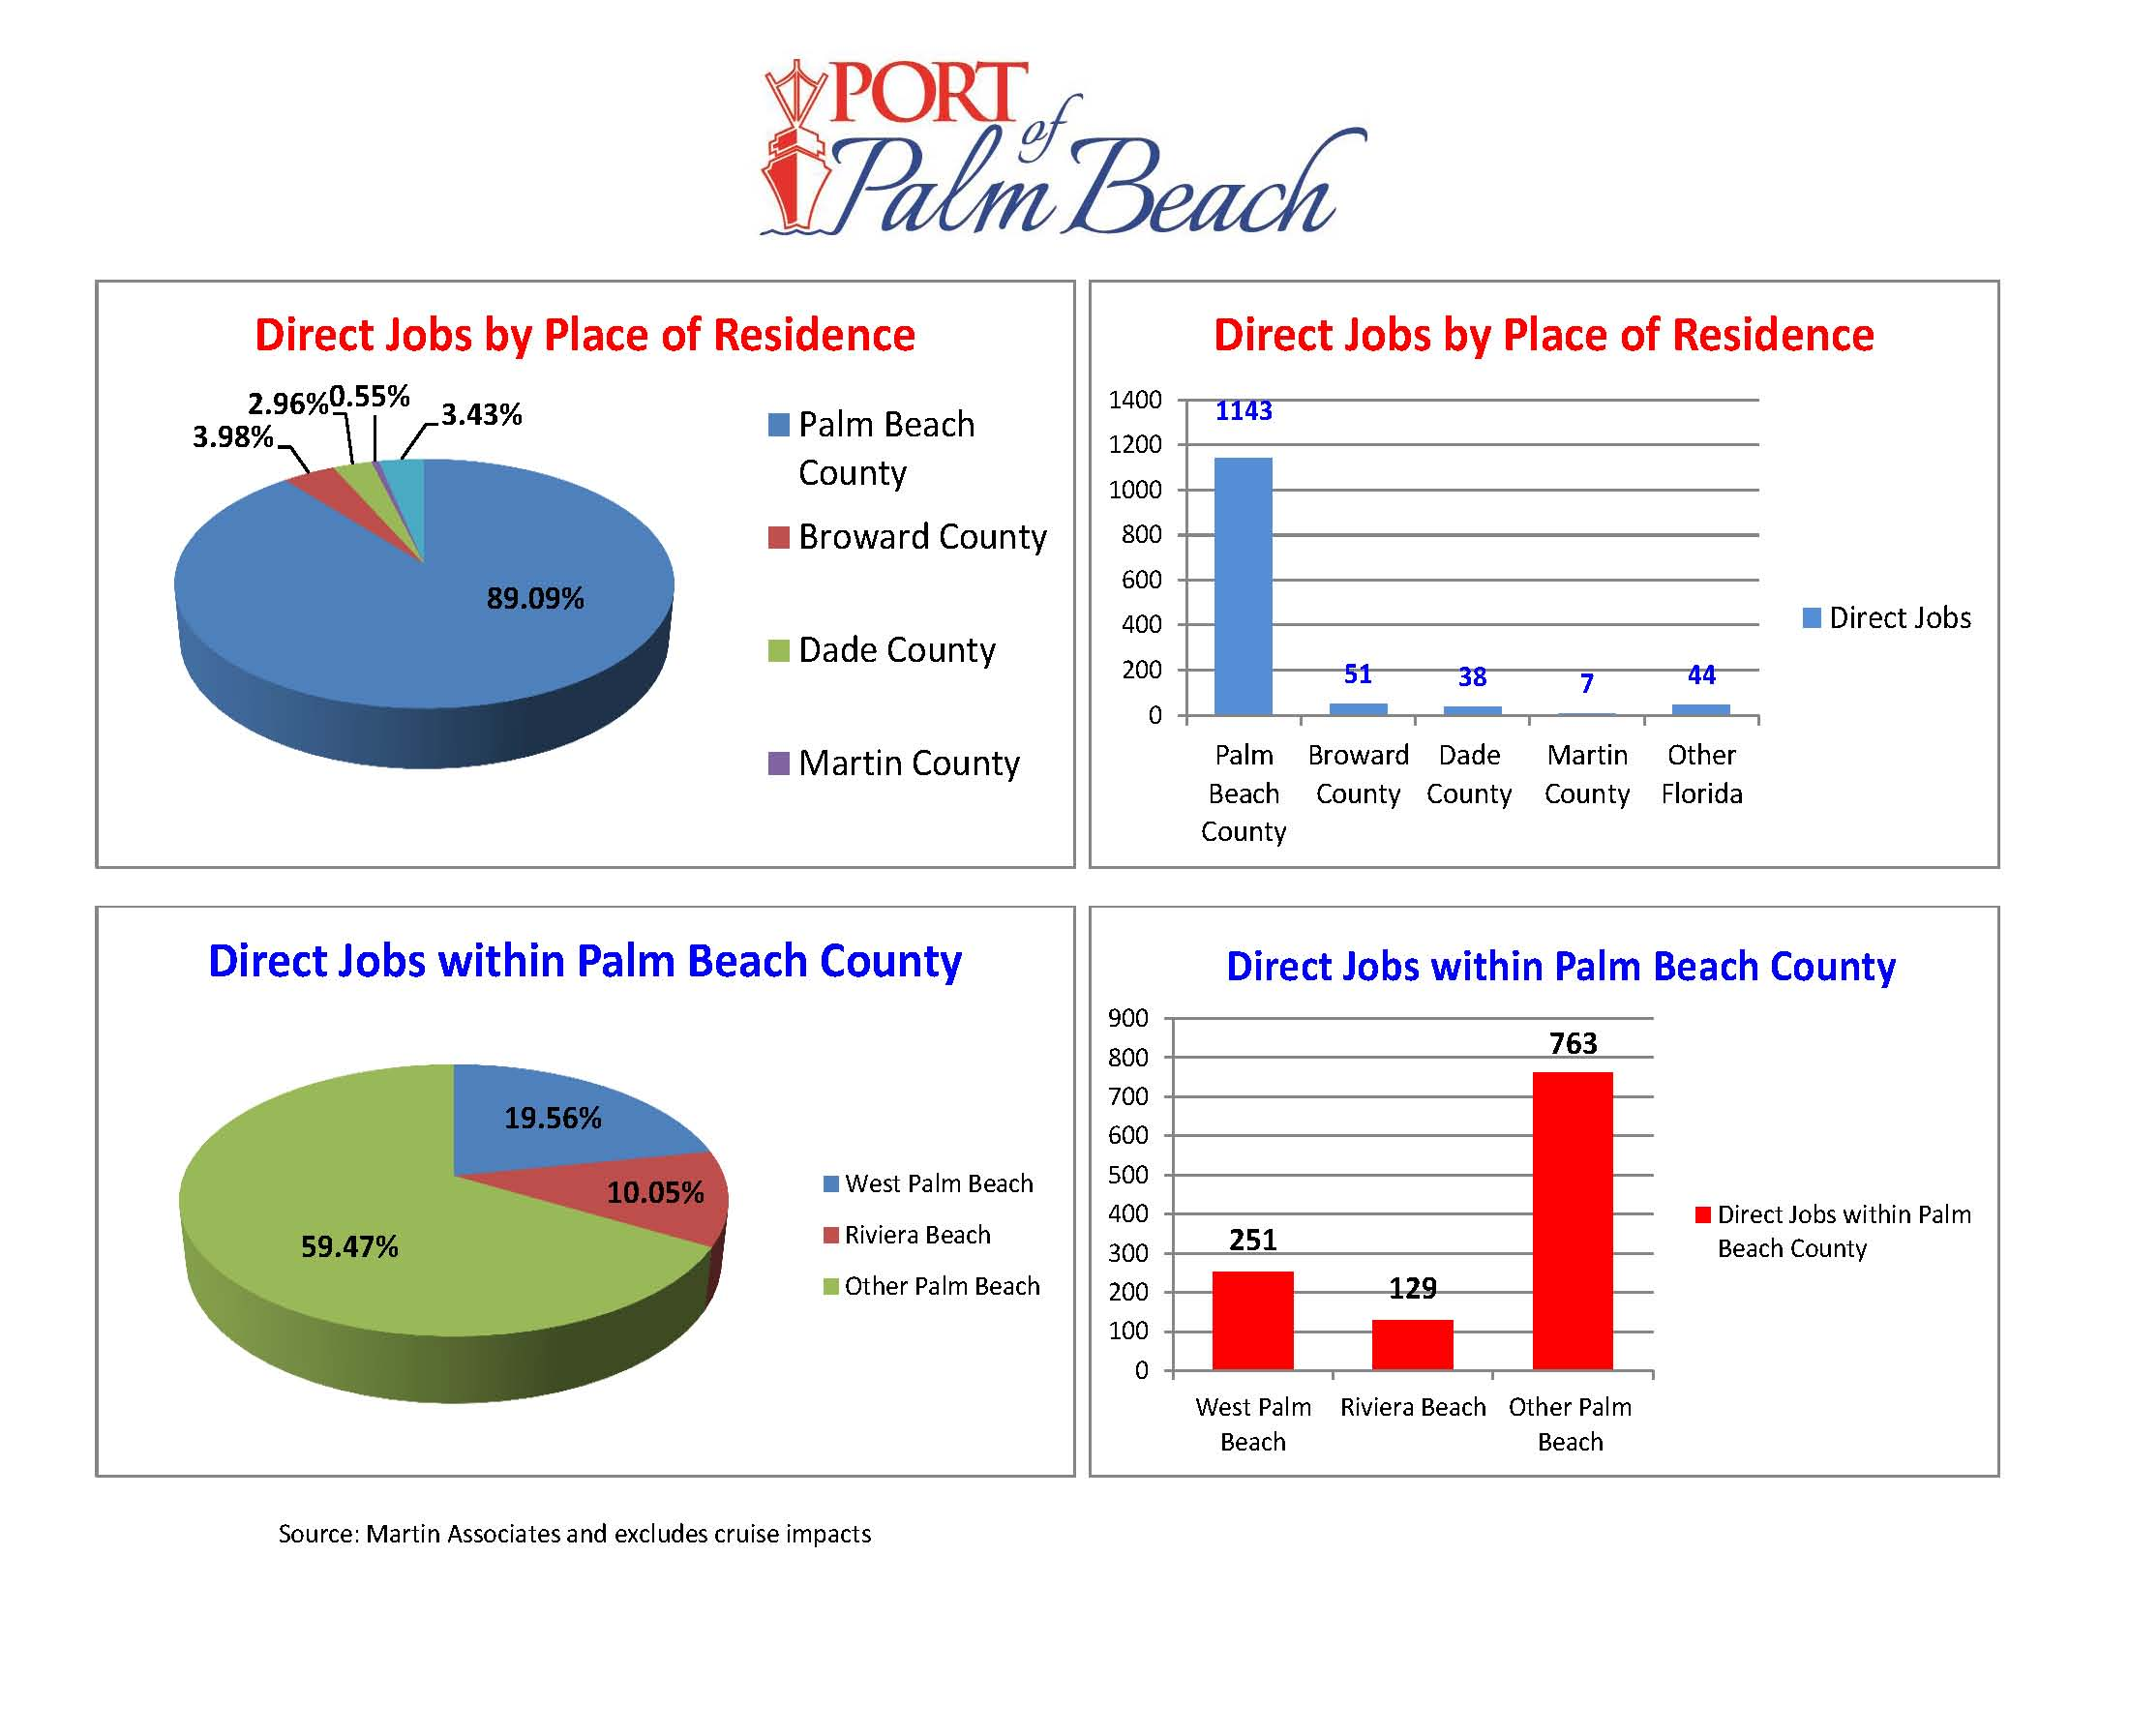 Distribution of Direct Jobs By Place of Residence